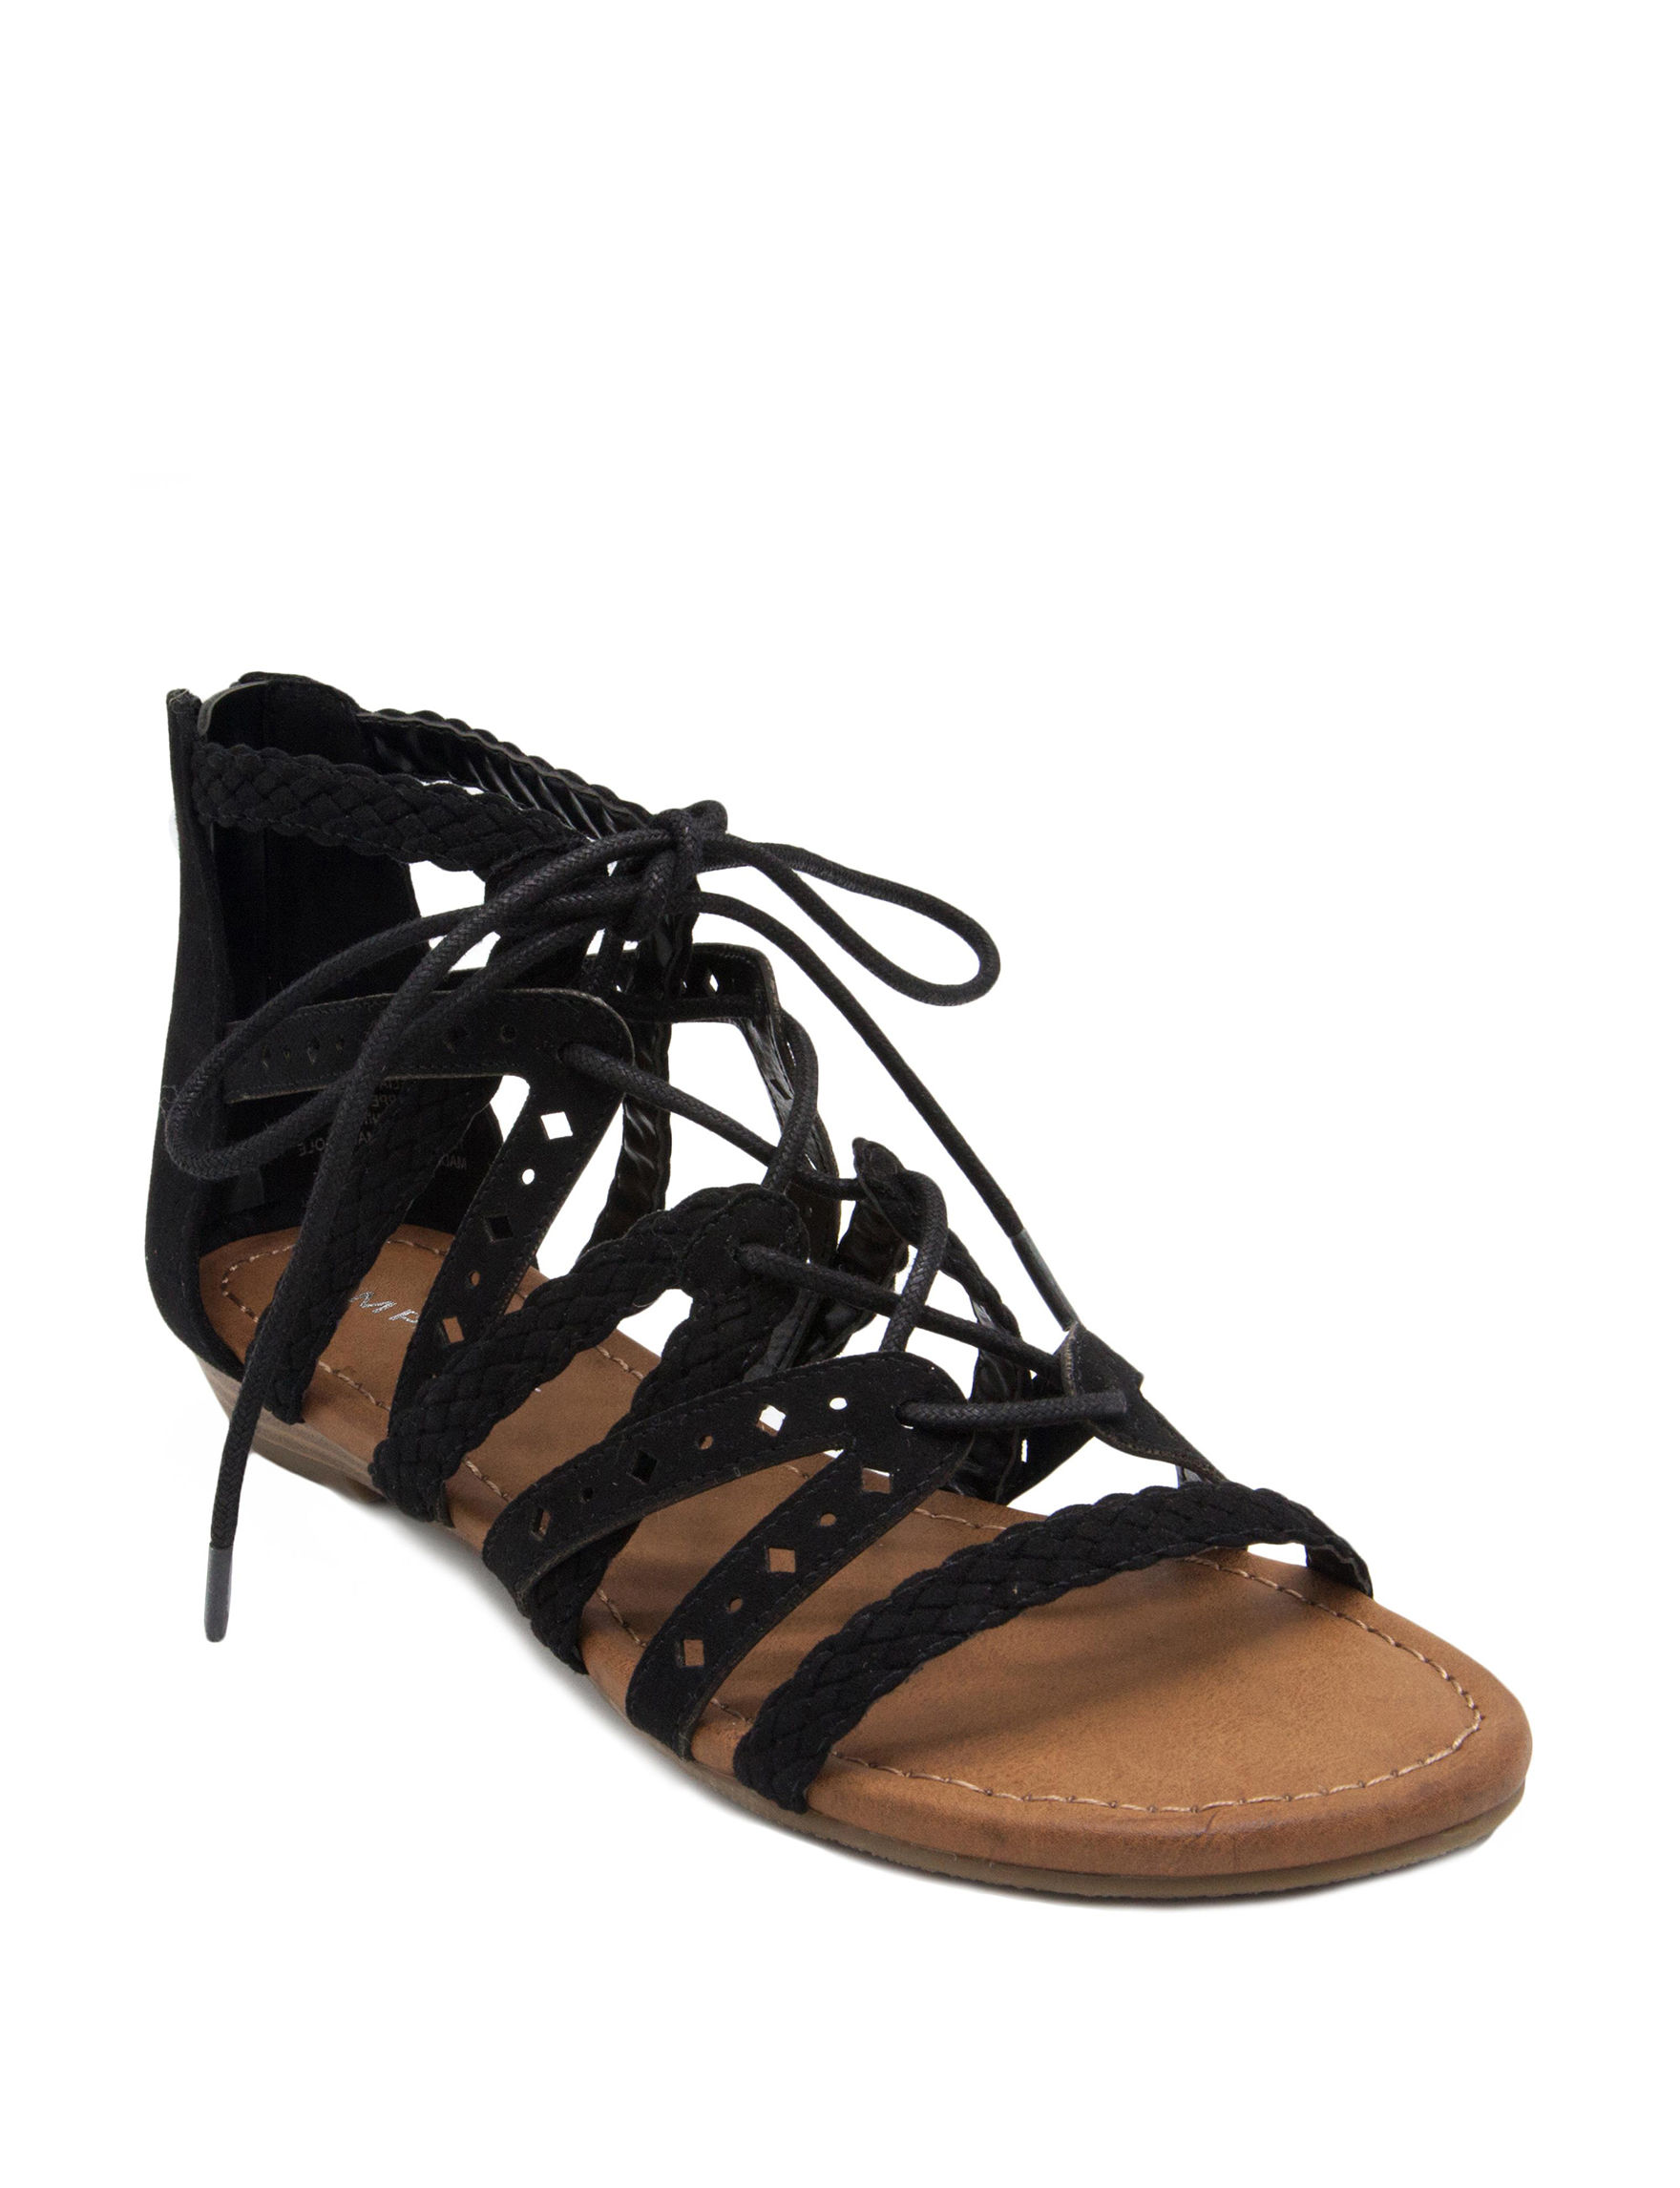 Rampage Black Flat Sandals Gladiators